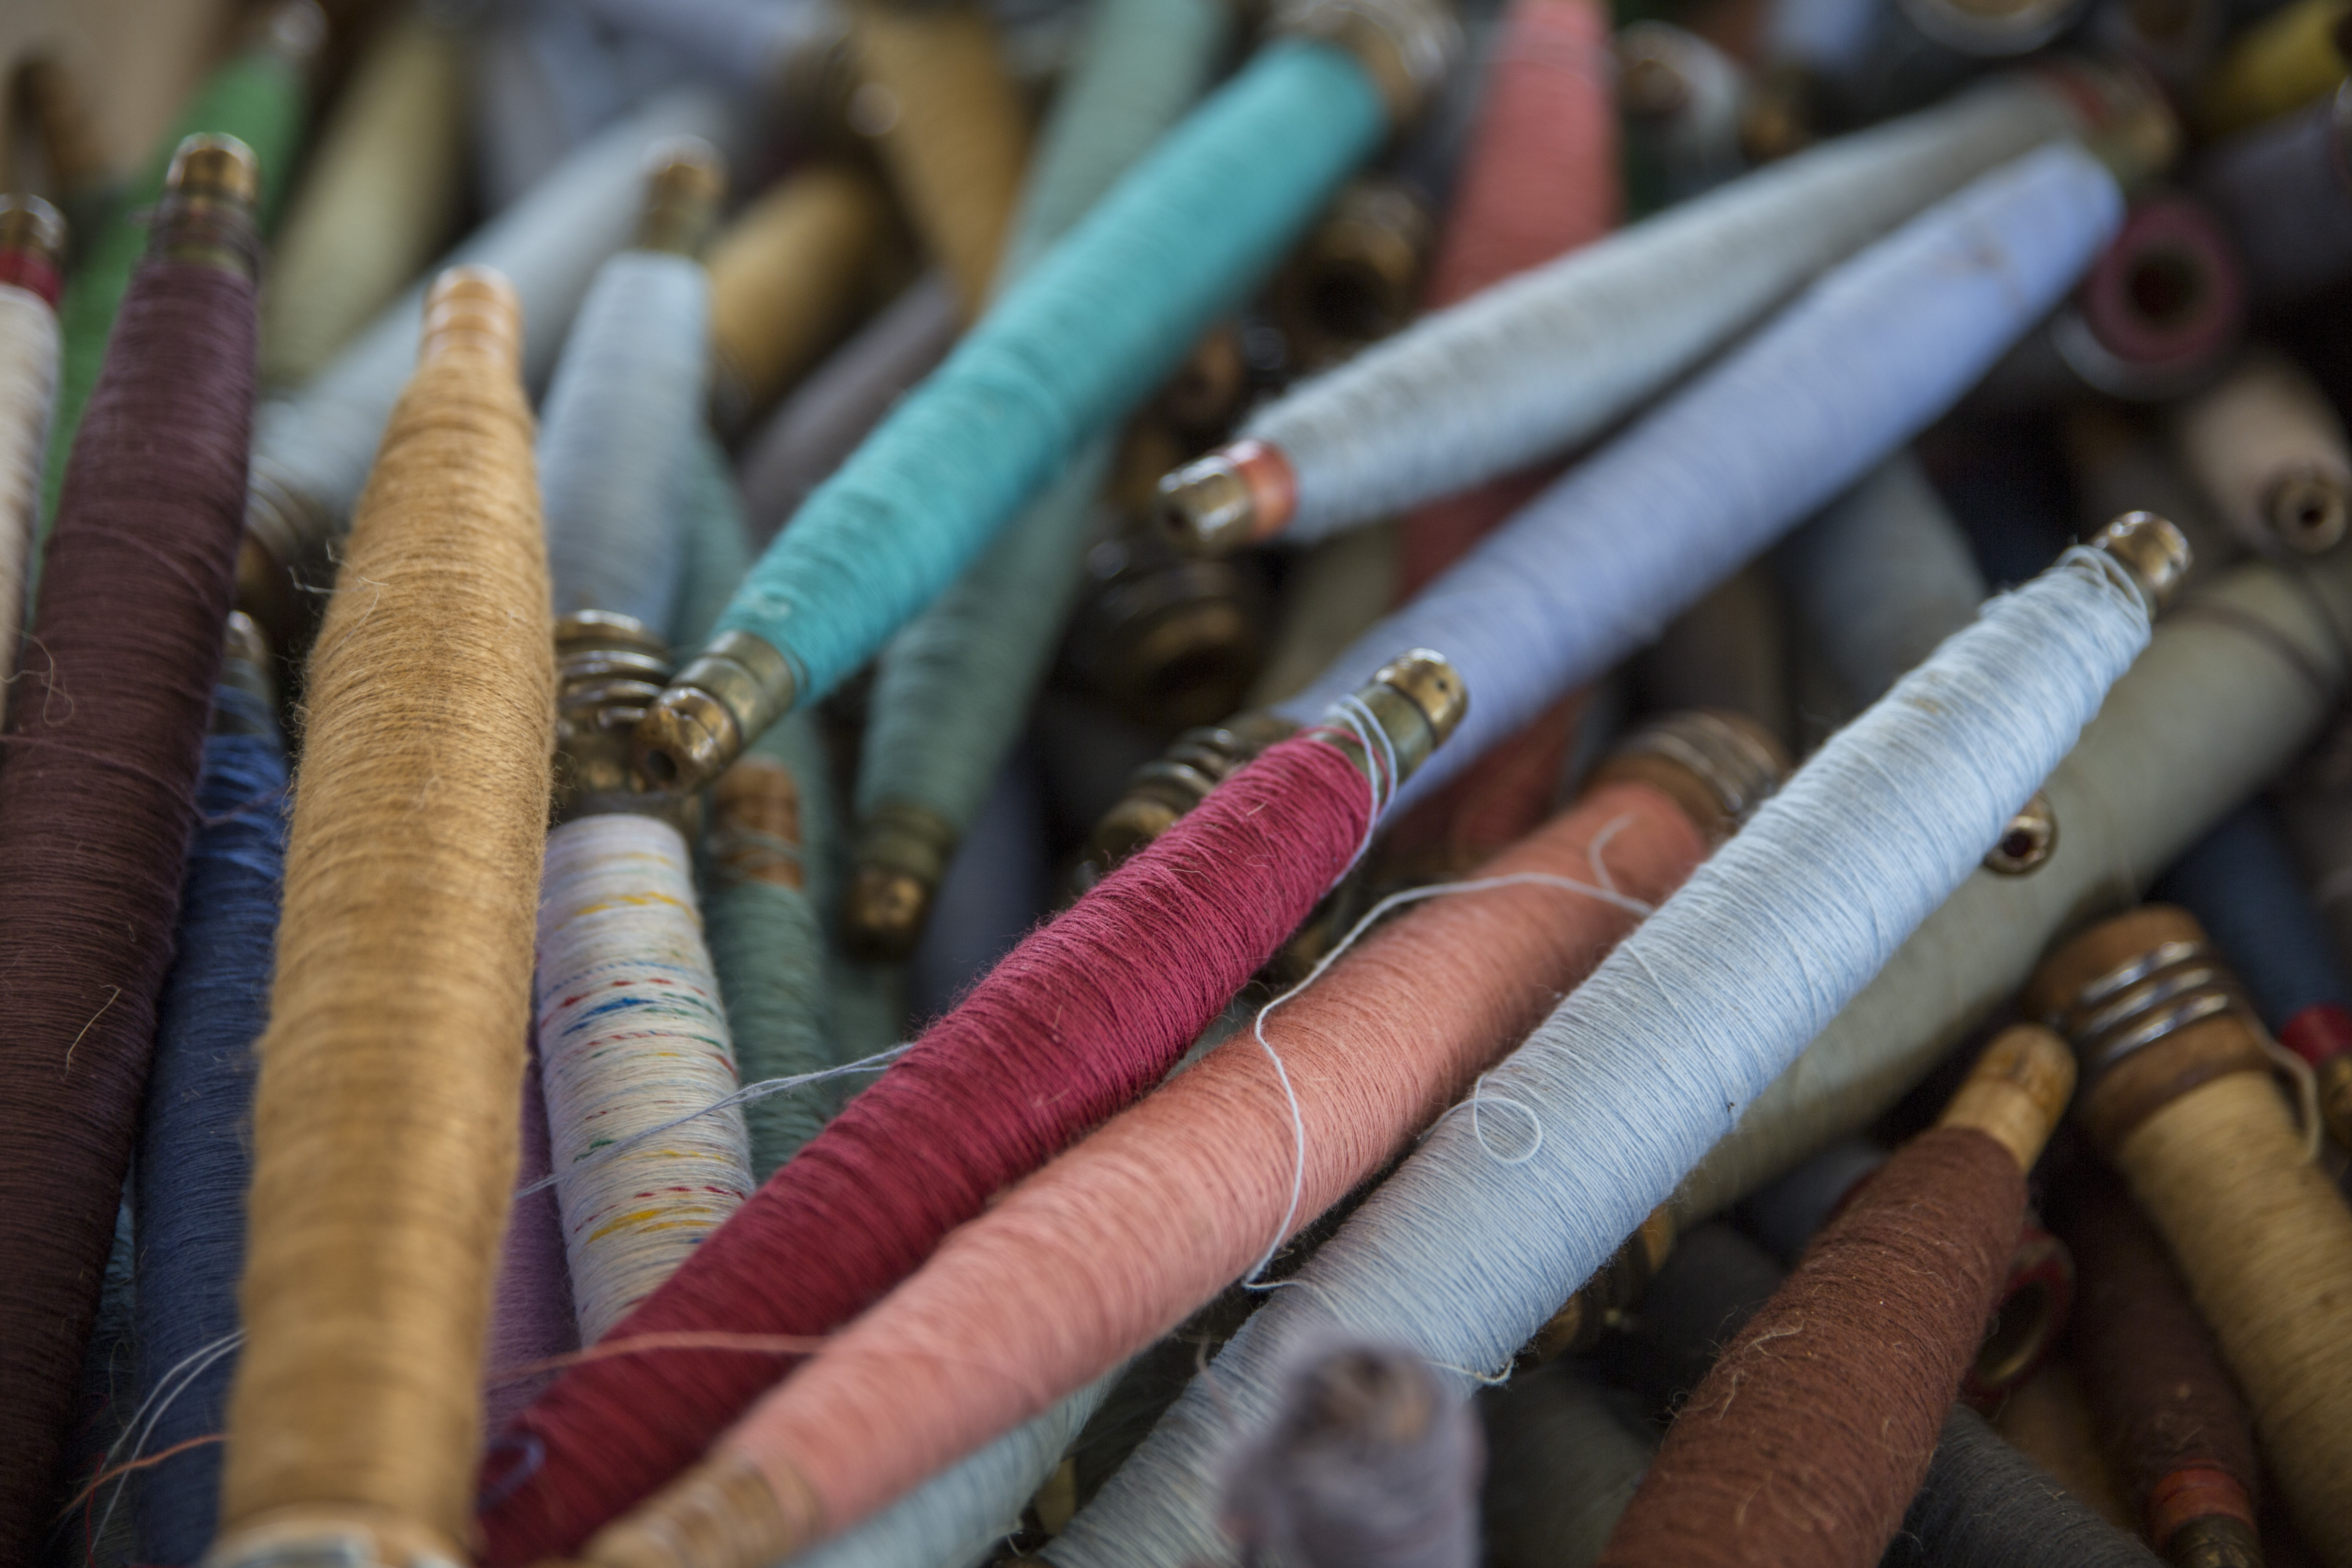 Pile of multicolored craft threads and spools close up in Springfield